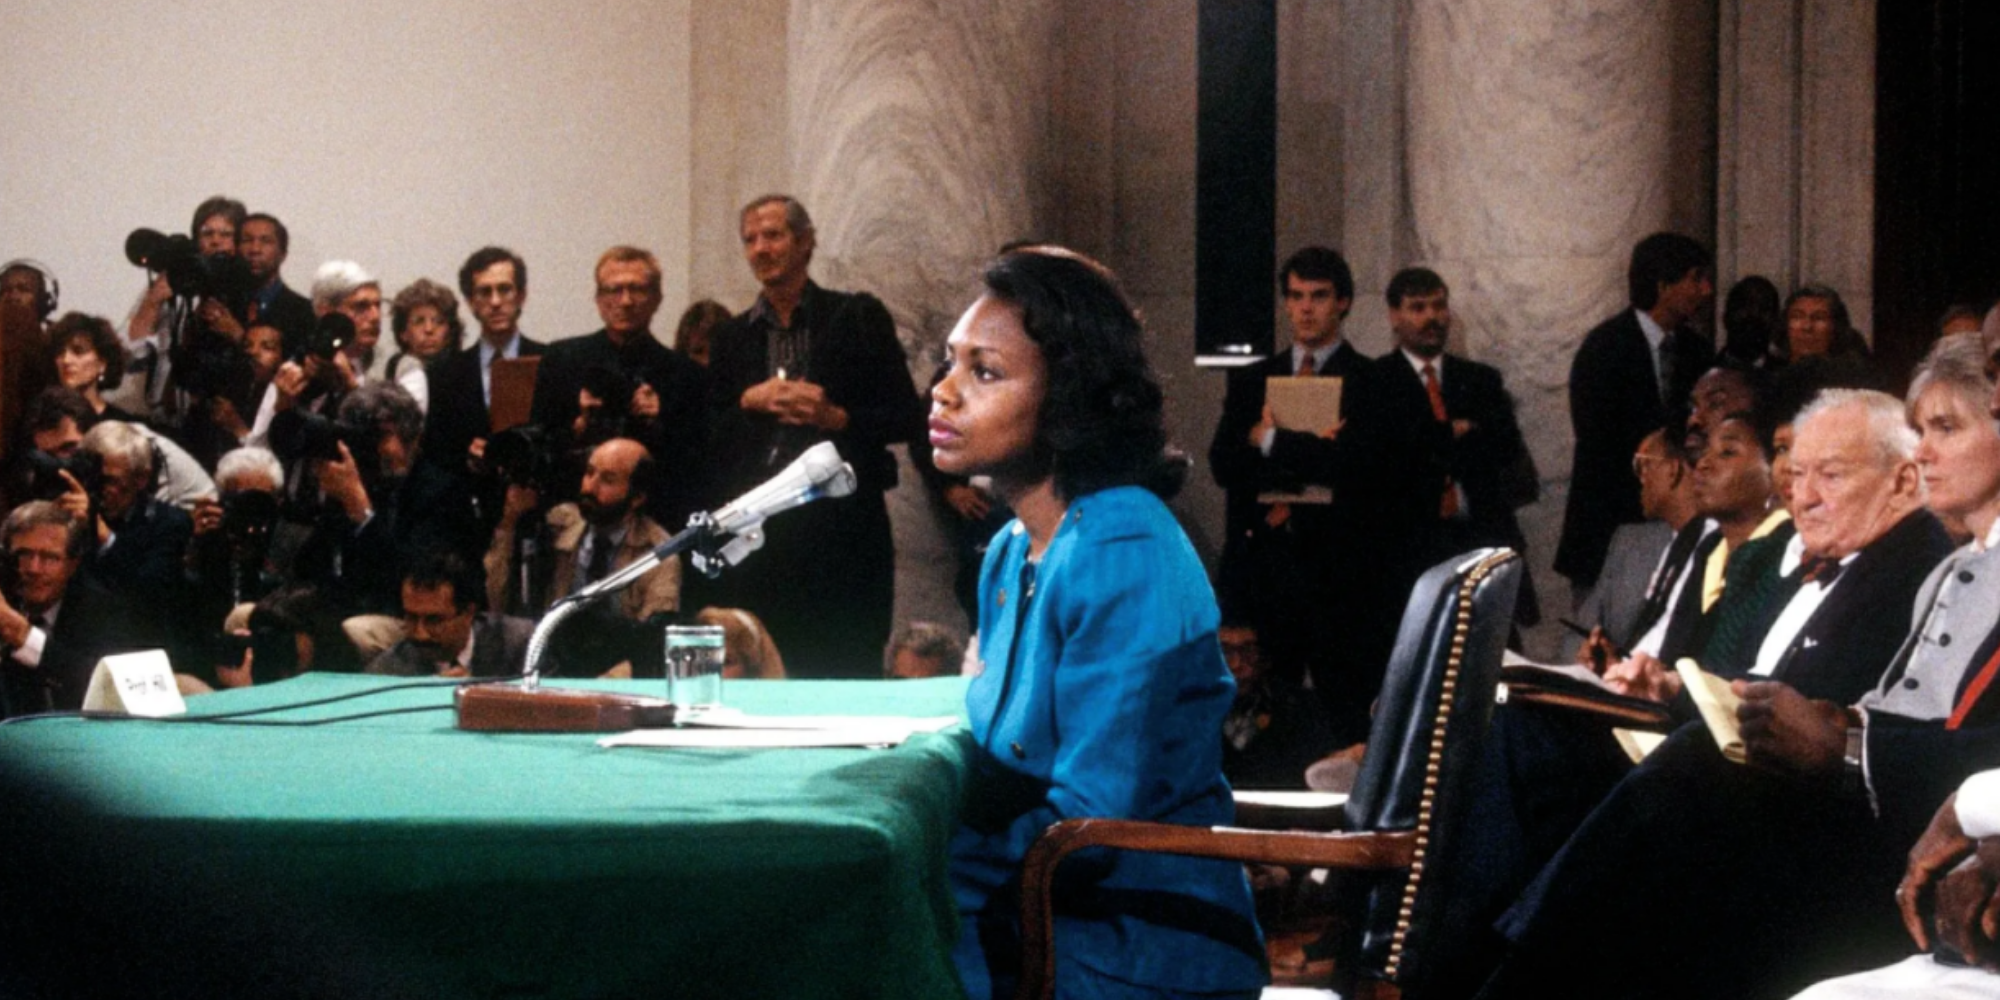 One of the first women to make waves in bringing awareness to workplace sexual misconduct was Anita Hill.